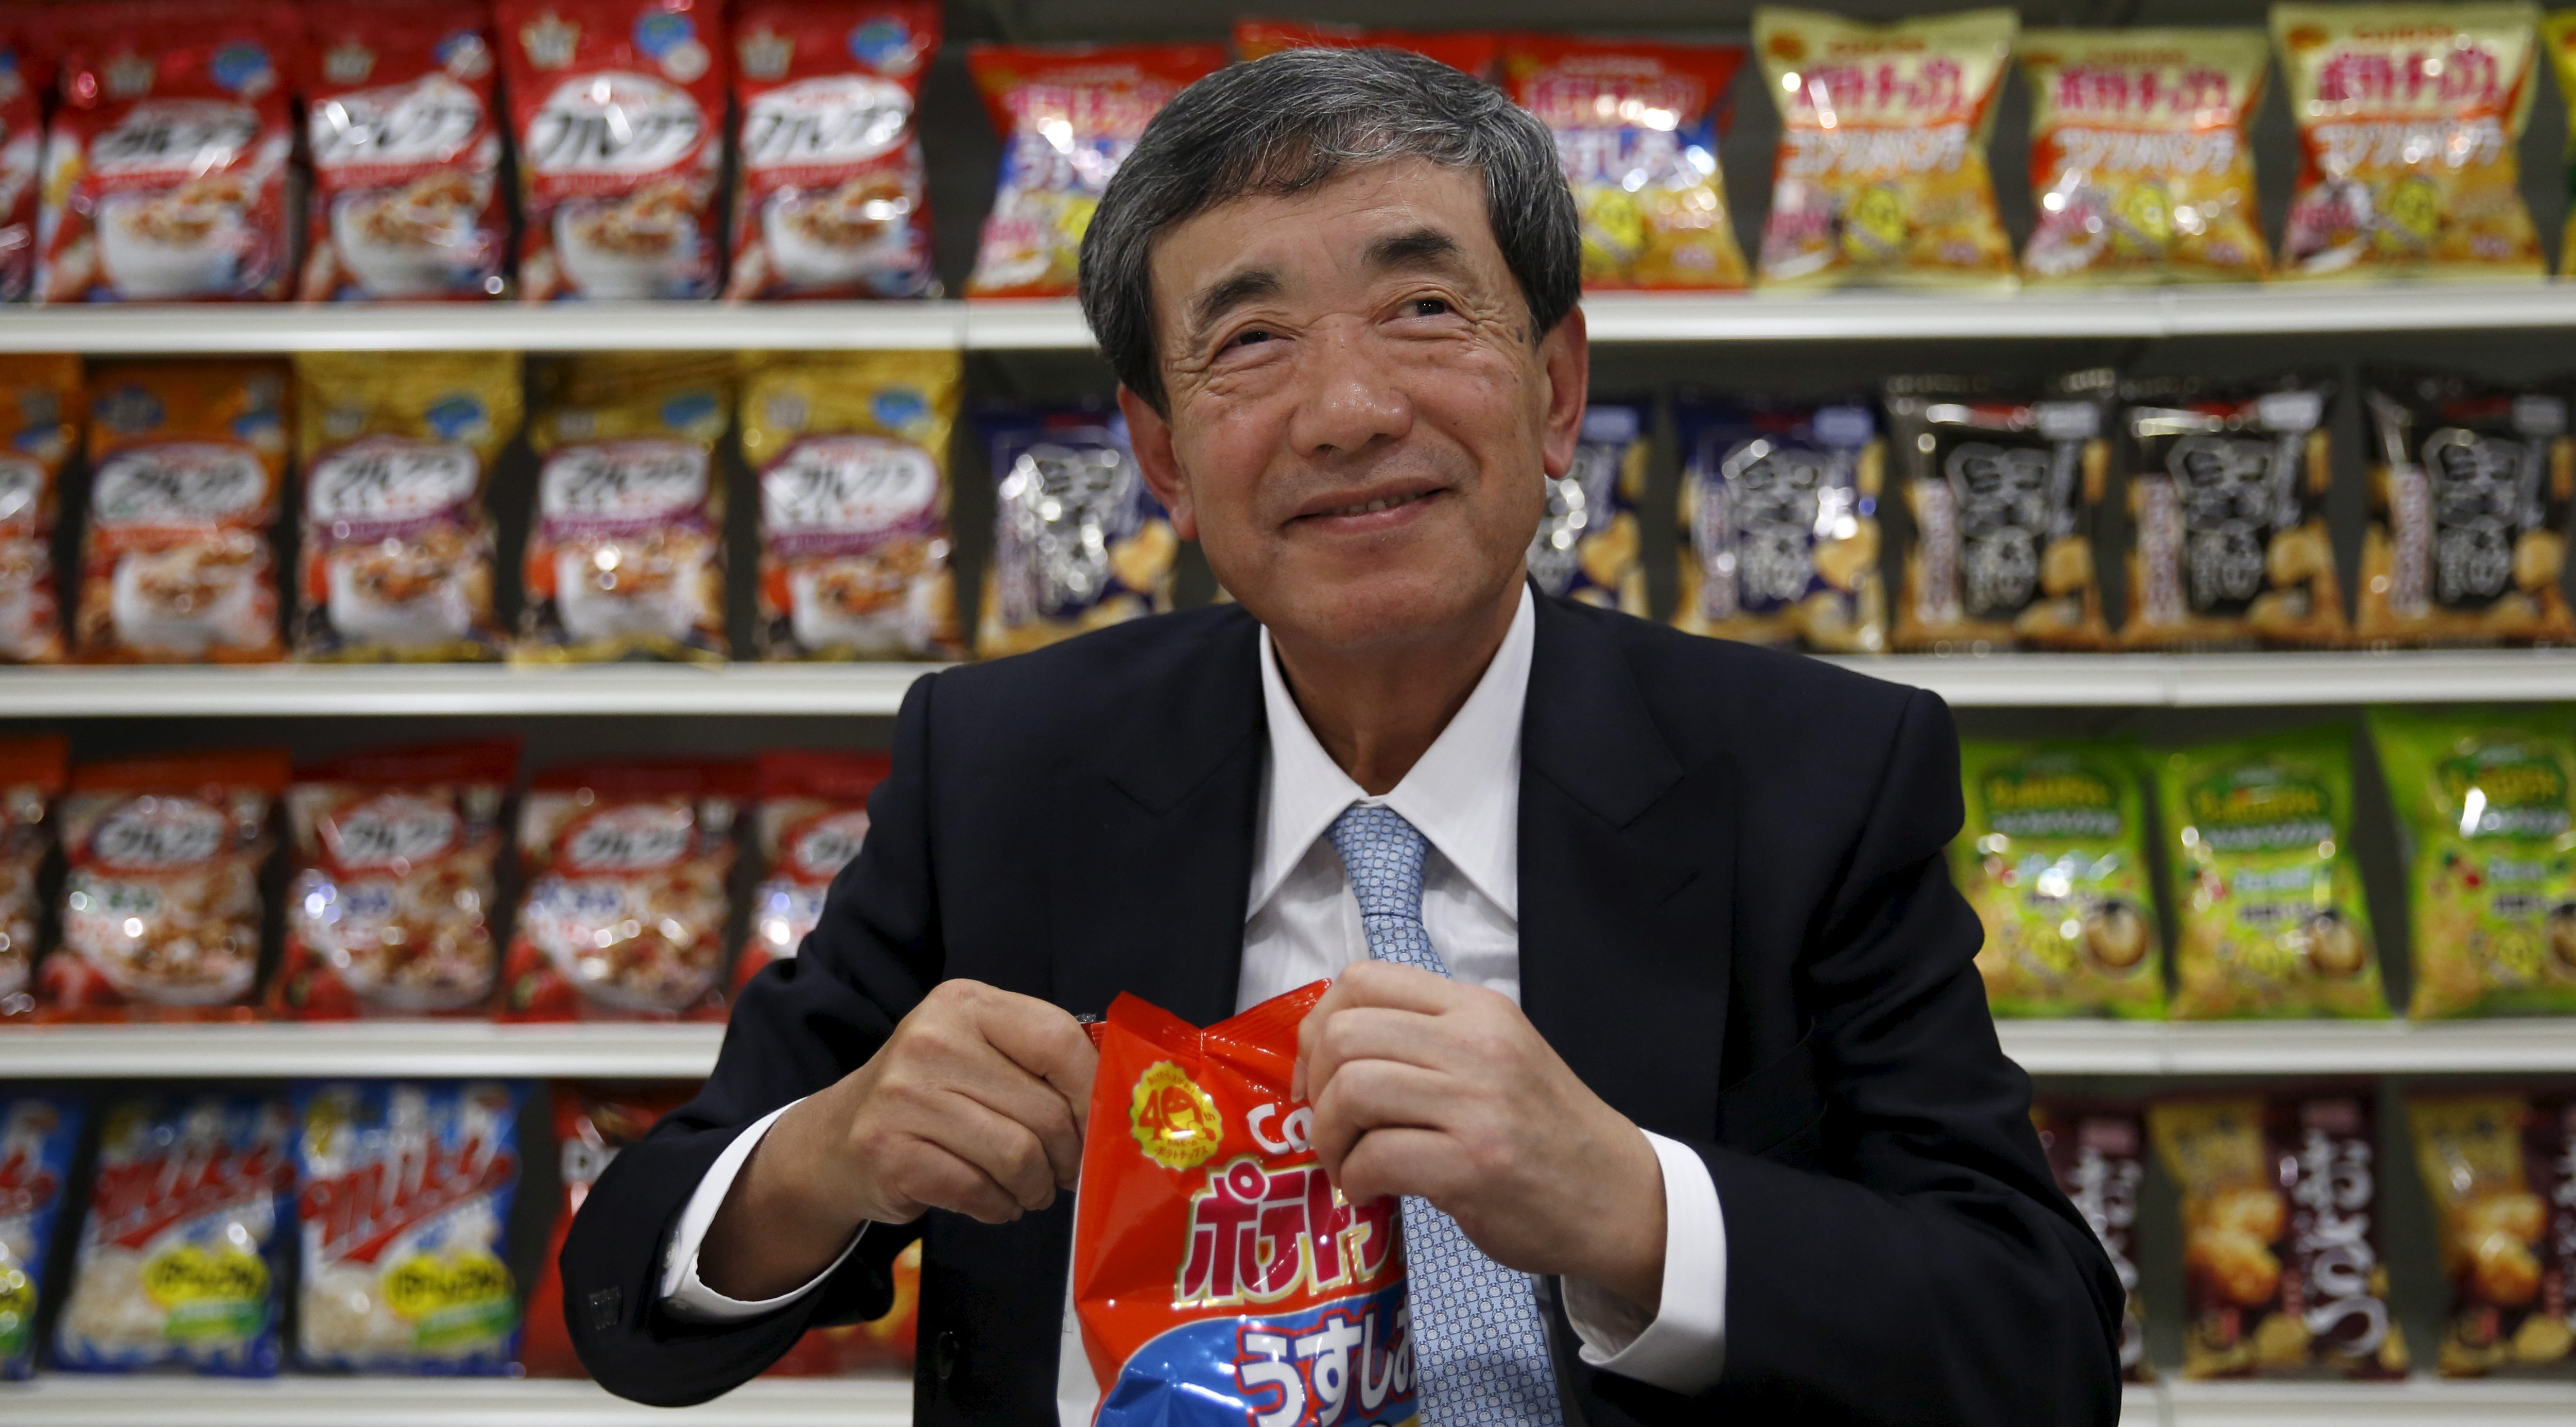 Akira Matsumoto, chairman and chief executive of Calbee, opens a pack of potato chips at the company headquarters in Tokyo, Japan, January 15, 2016.